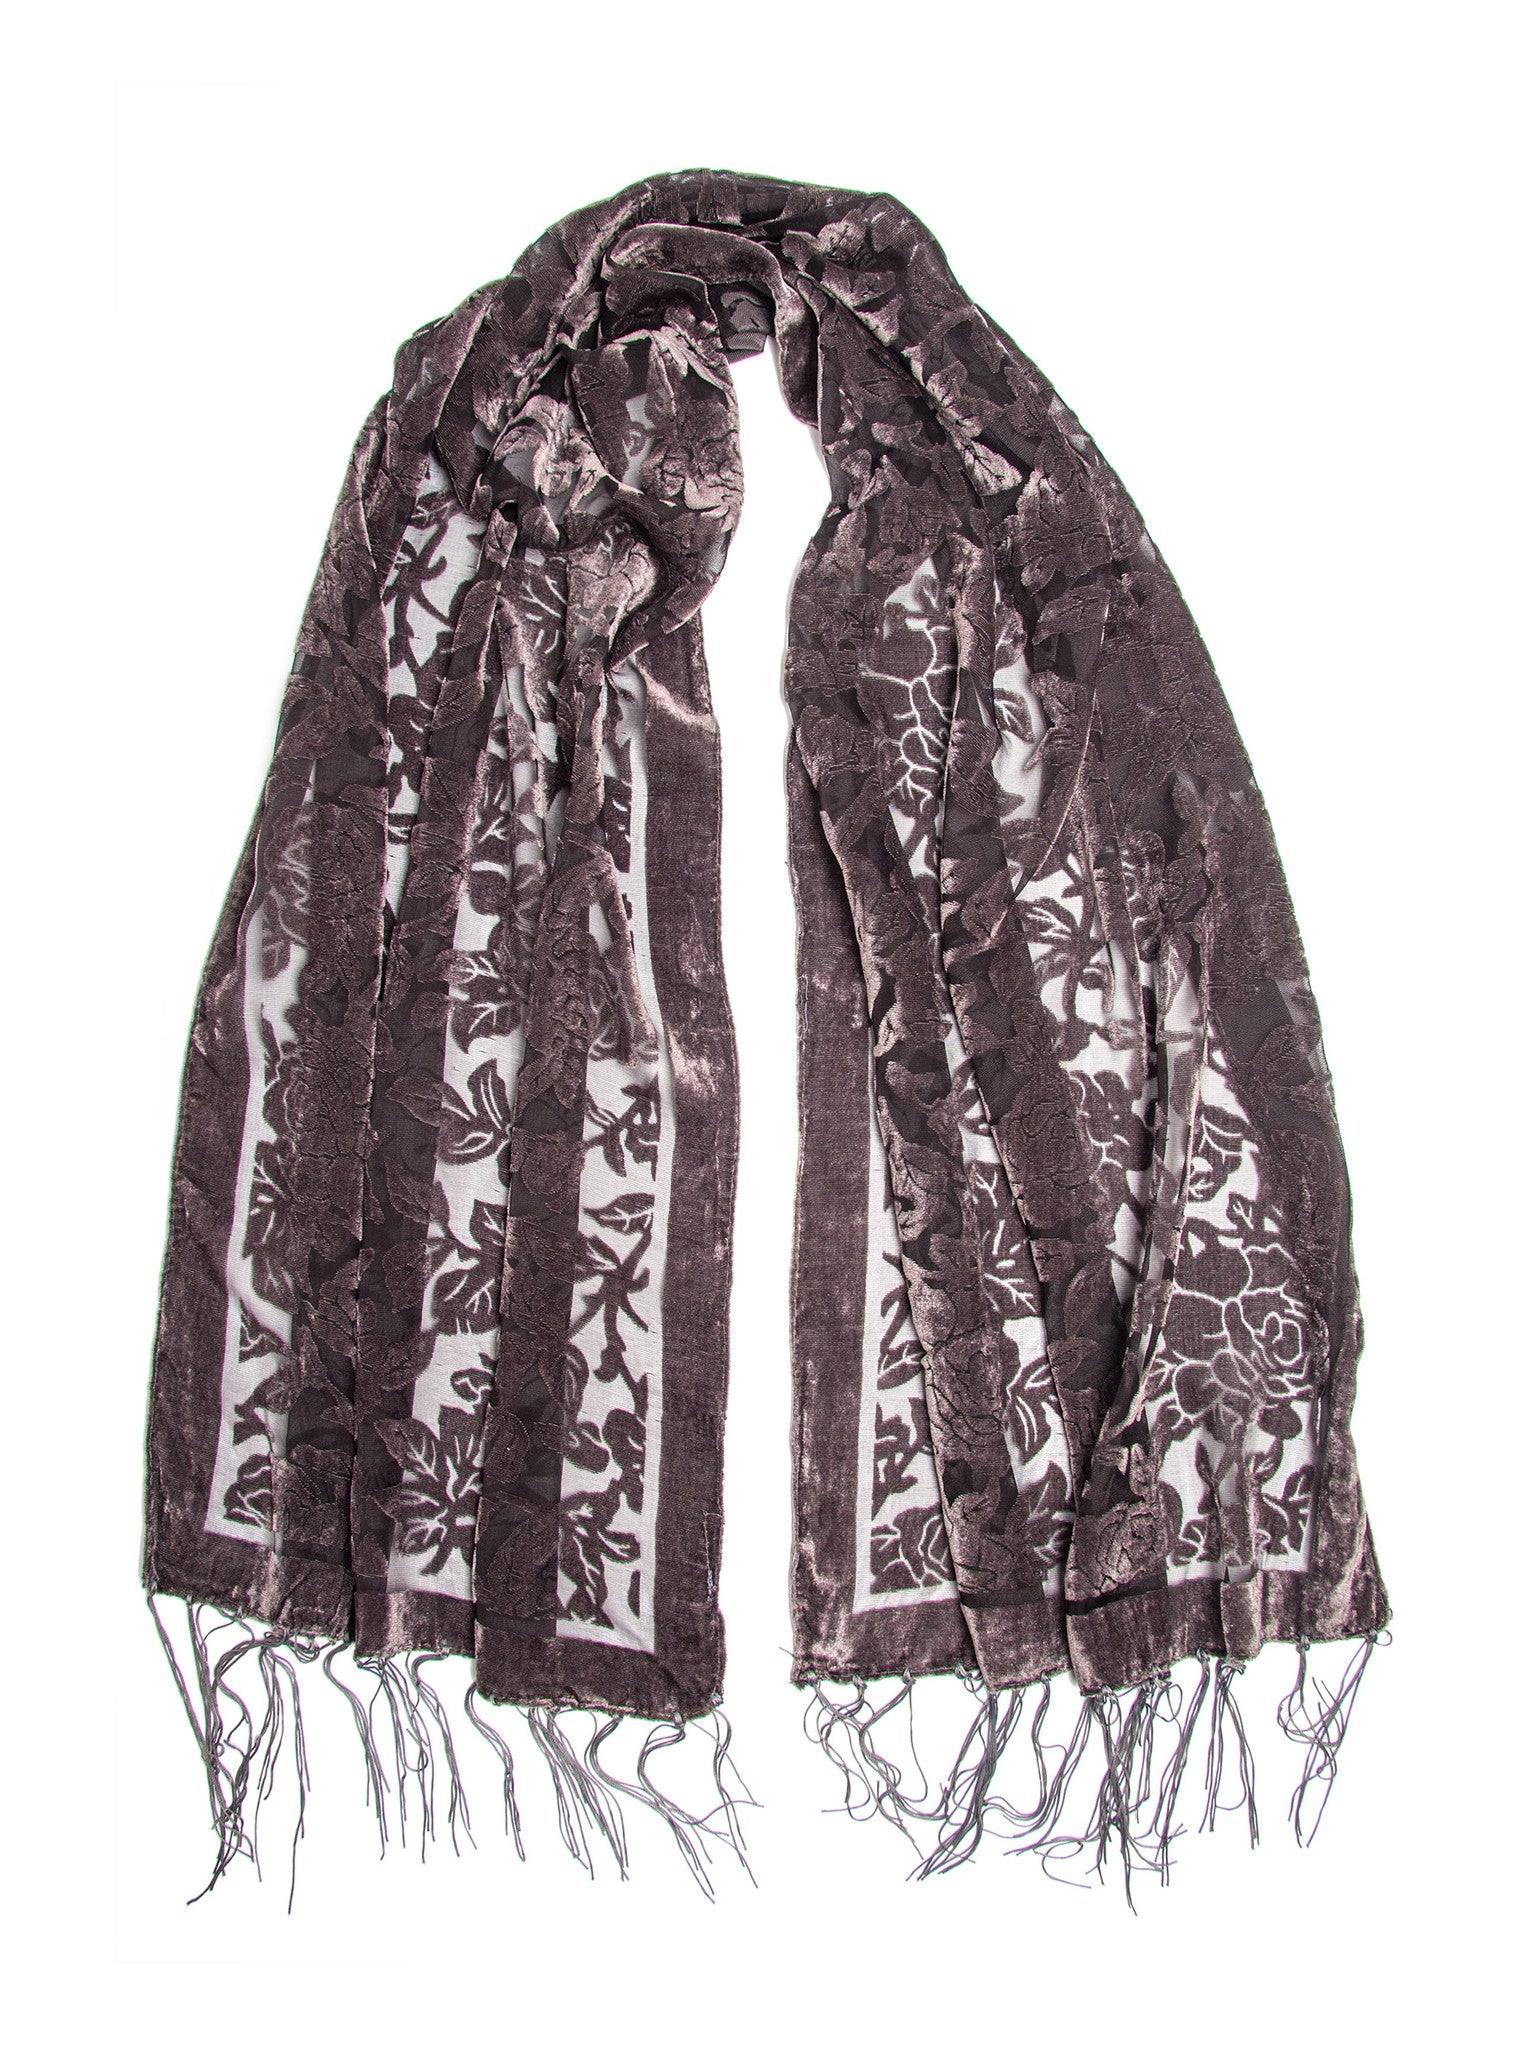 Scarves - Beatrice Scarf, Floral Burnout Fringe Scarf, Rose Print Silk Shawl -(Charcoal / One Size) Bohomonde  - 3